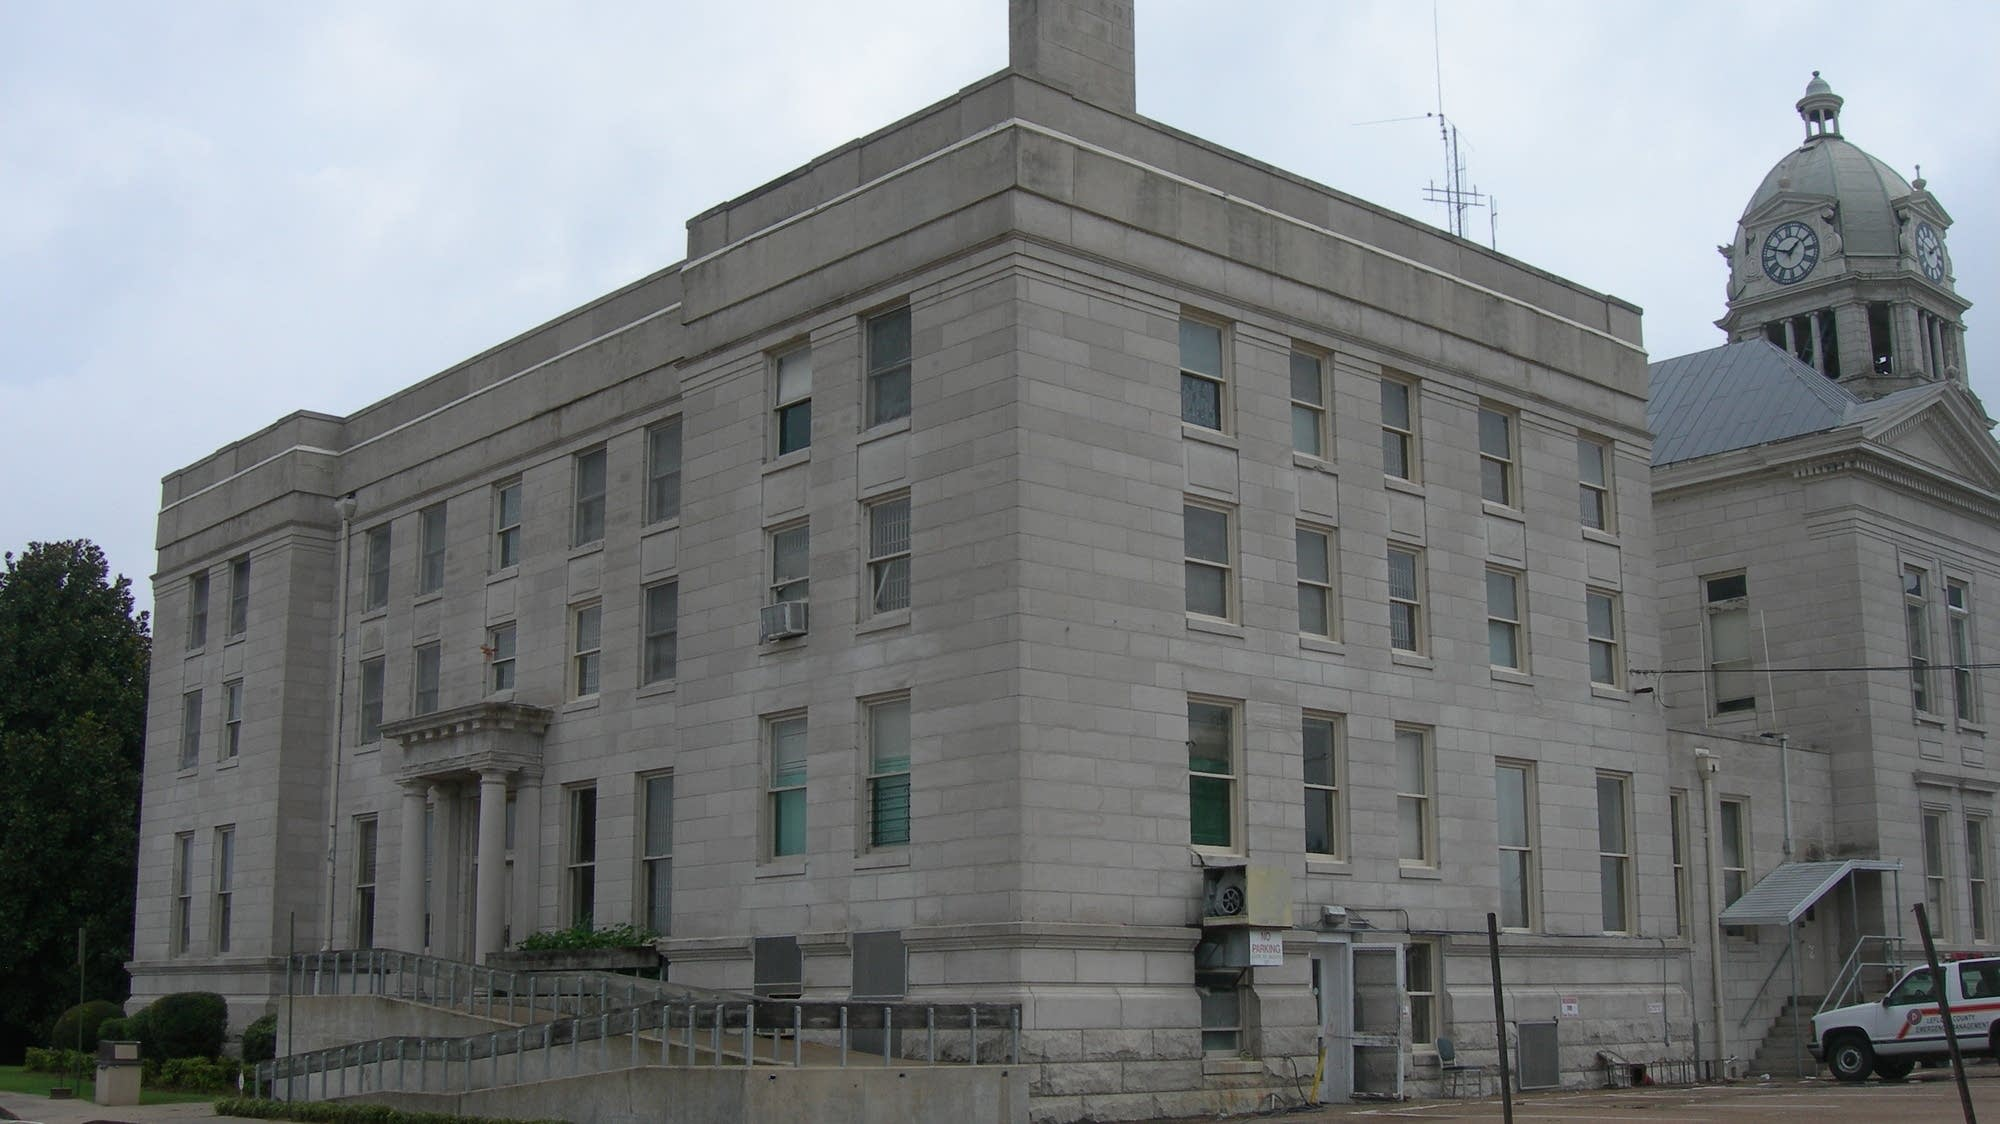 Leflore County Court House in Greenwood, Mississippi